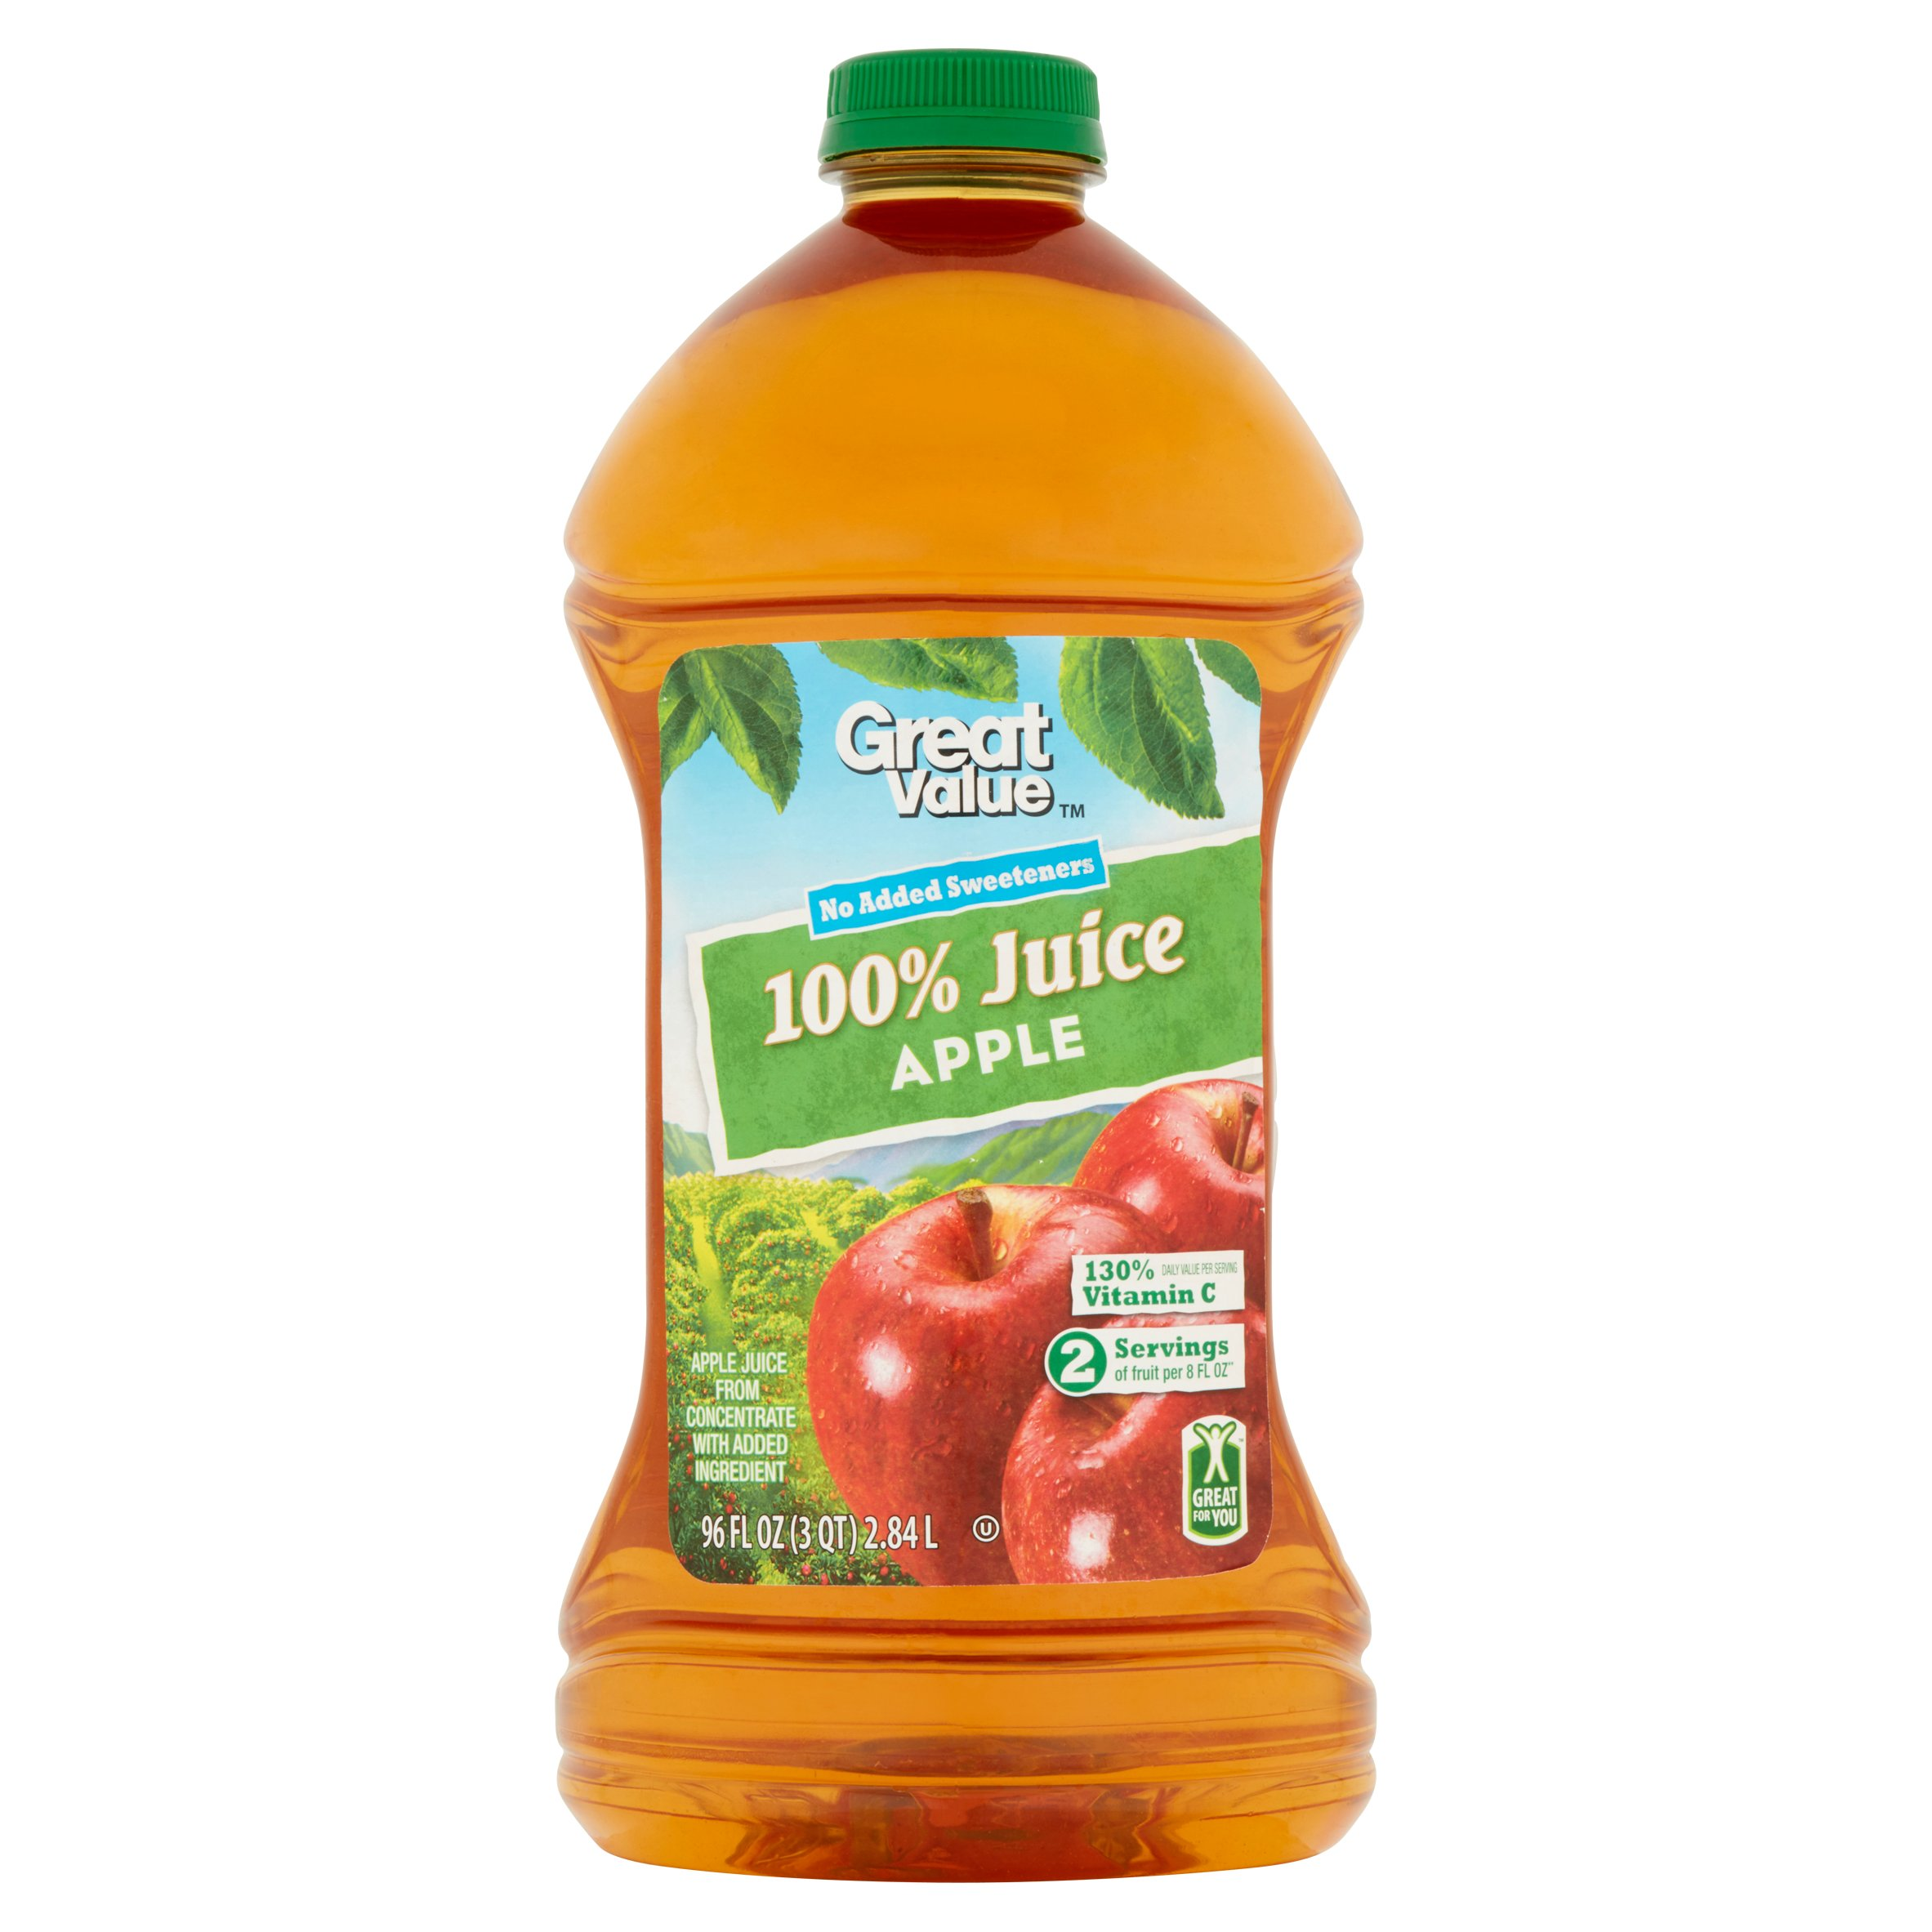 Great Value 100% Apple Juice, 96 Fl Oz by Wal-Mart Stores, Inc.